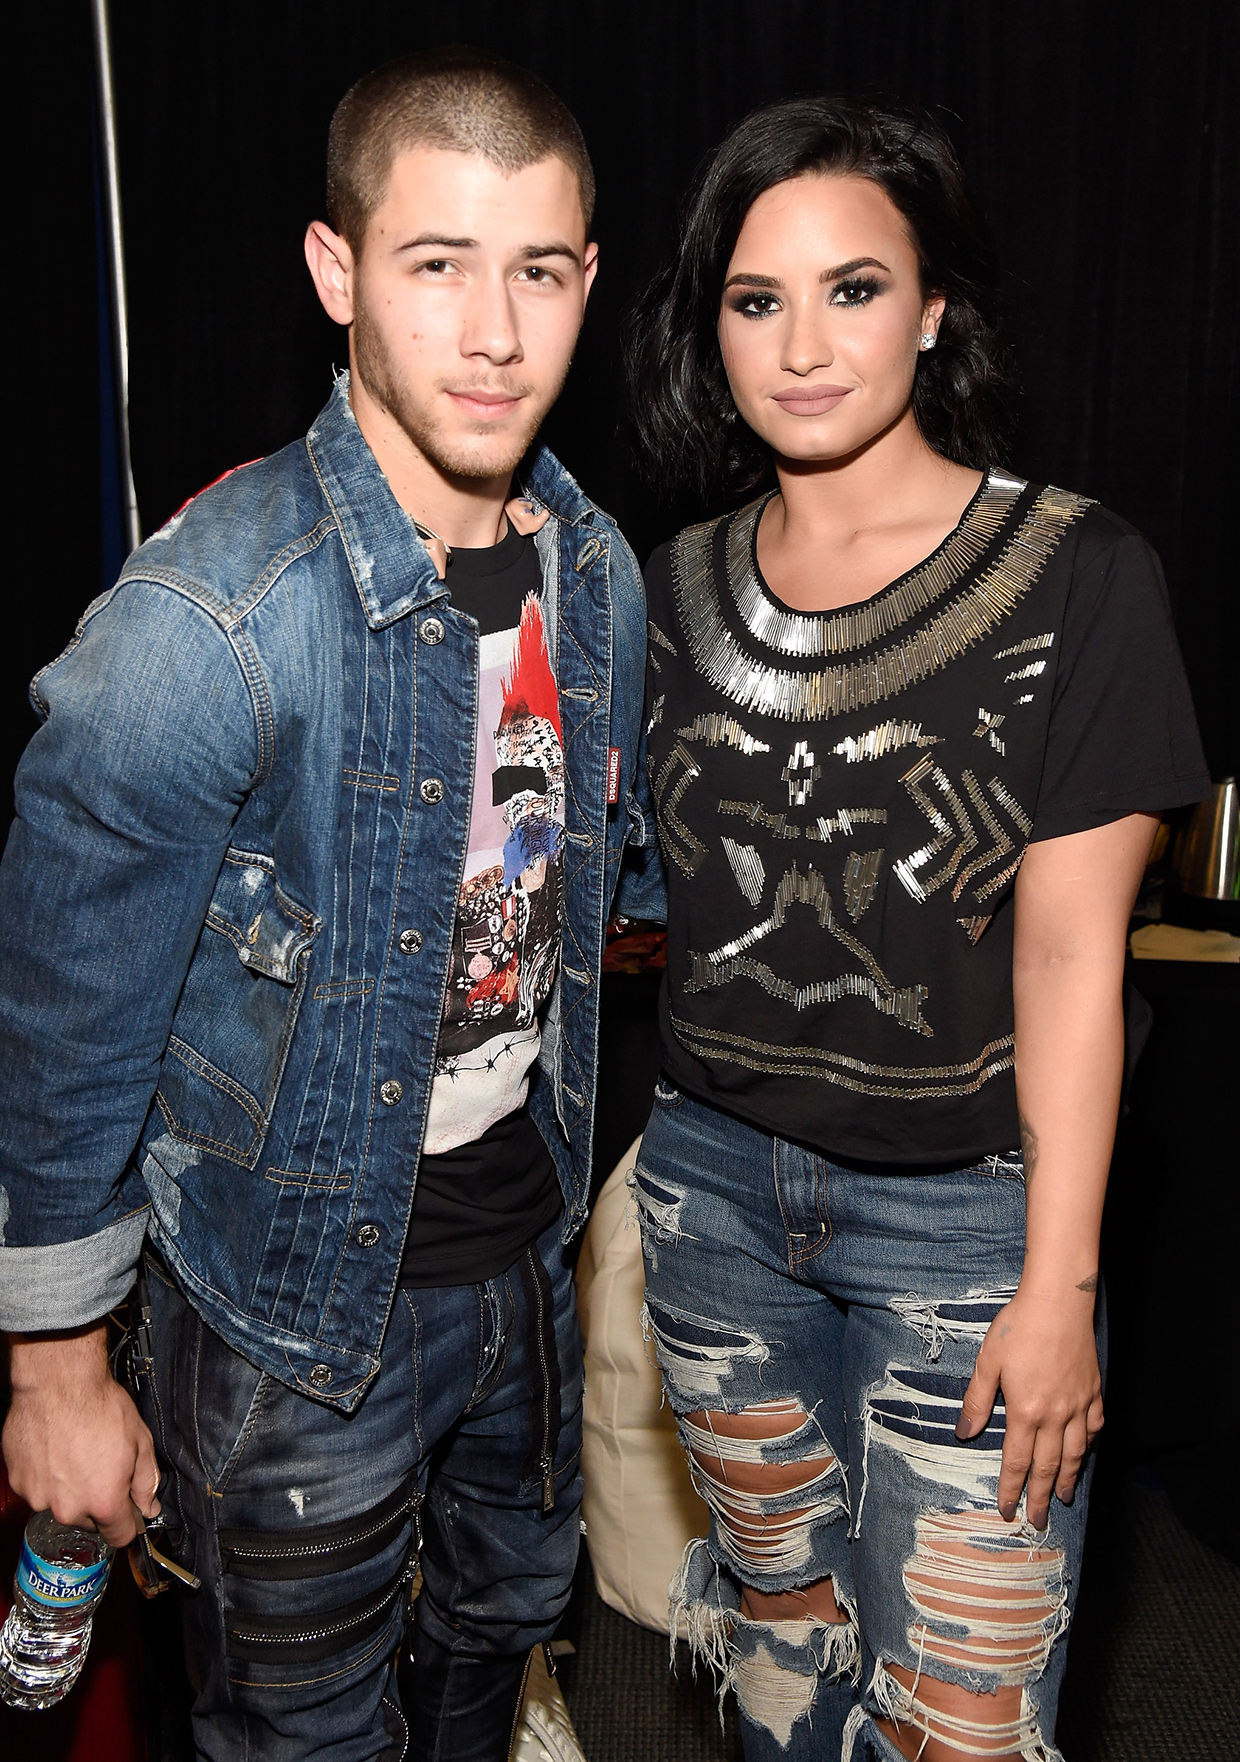 Nick Jonas and Demi Lovato - Lead